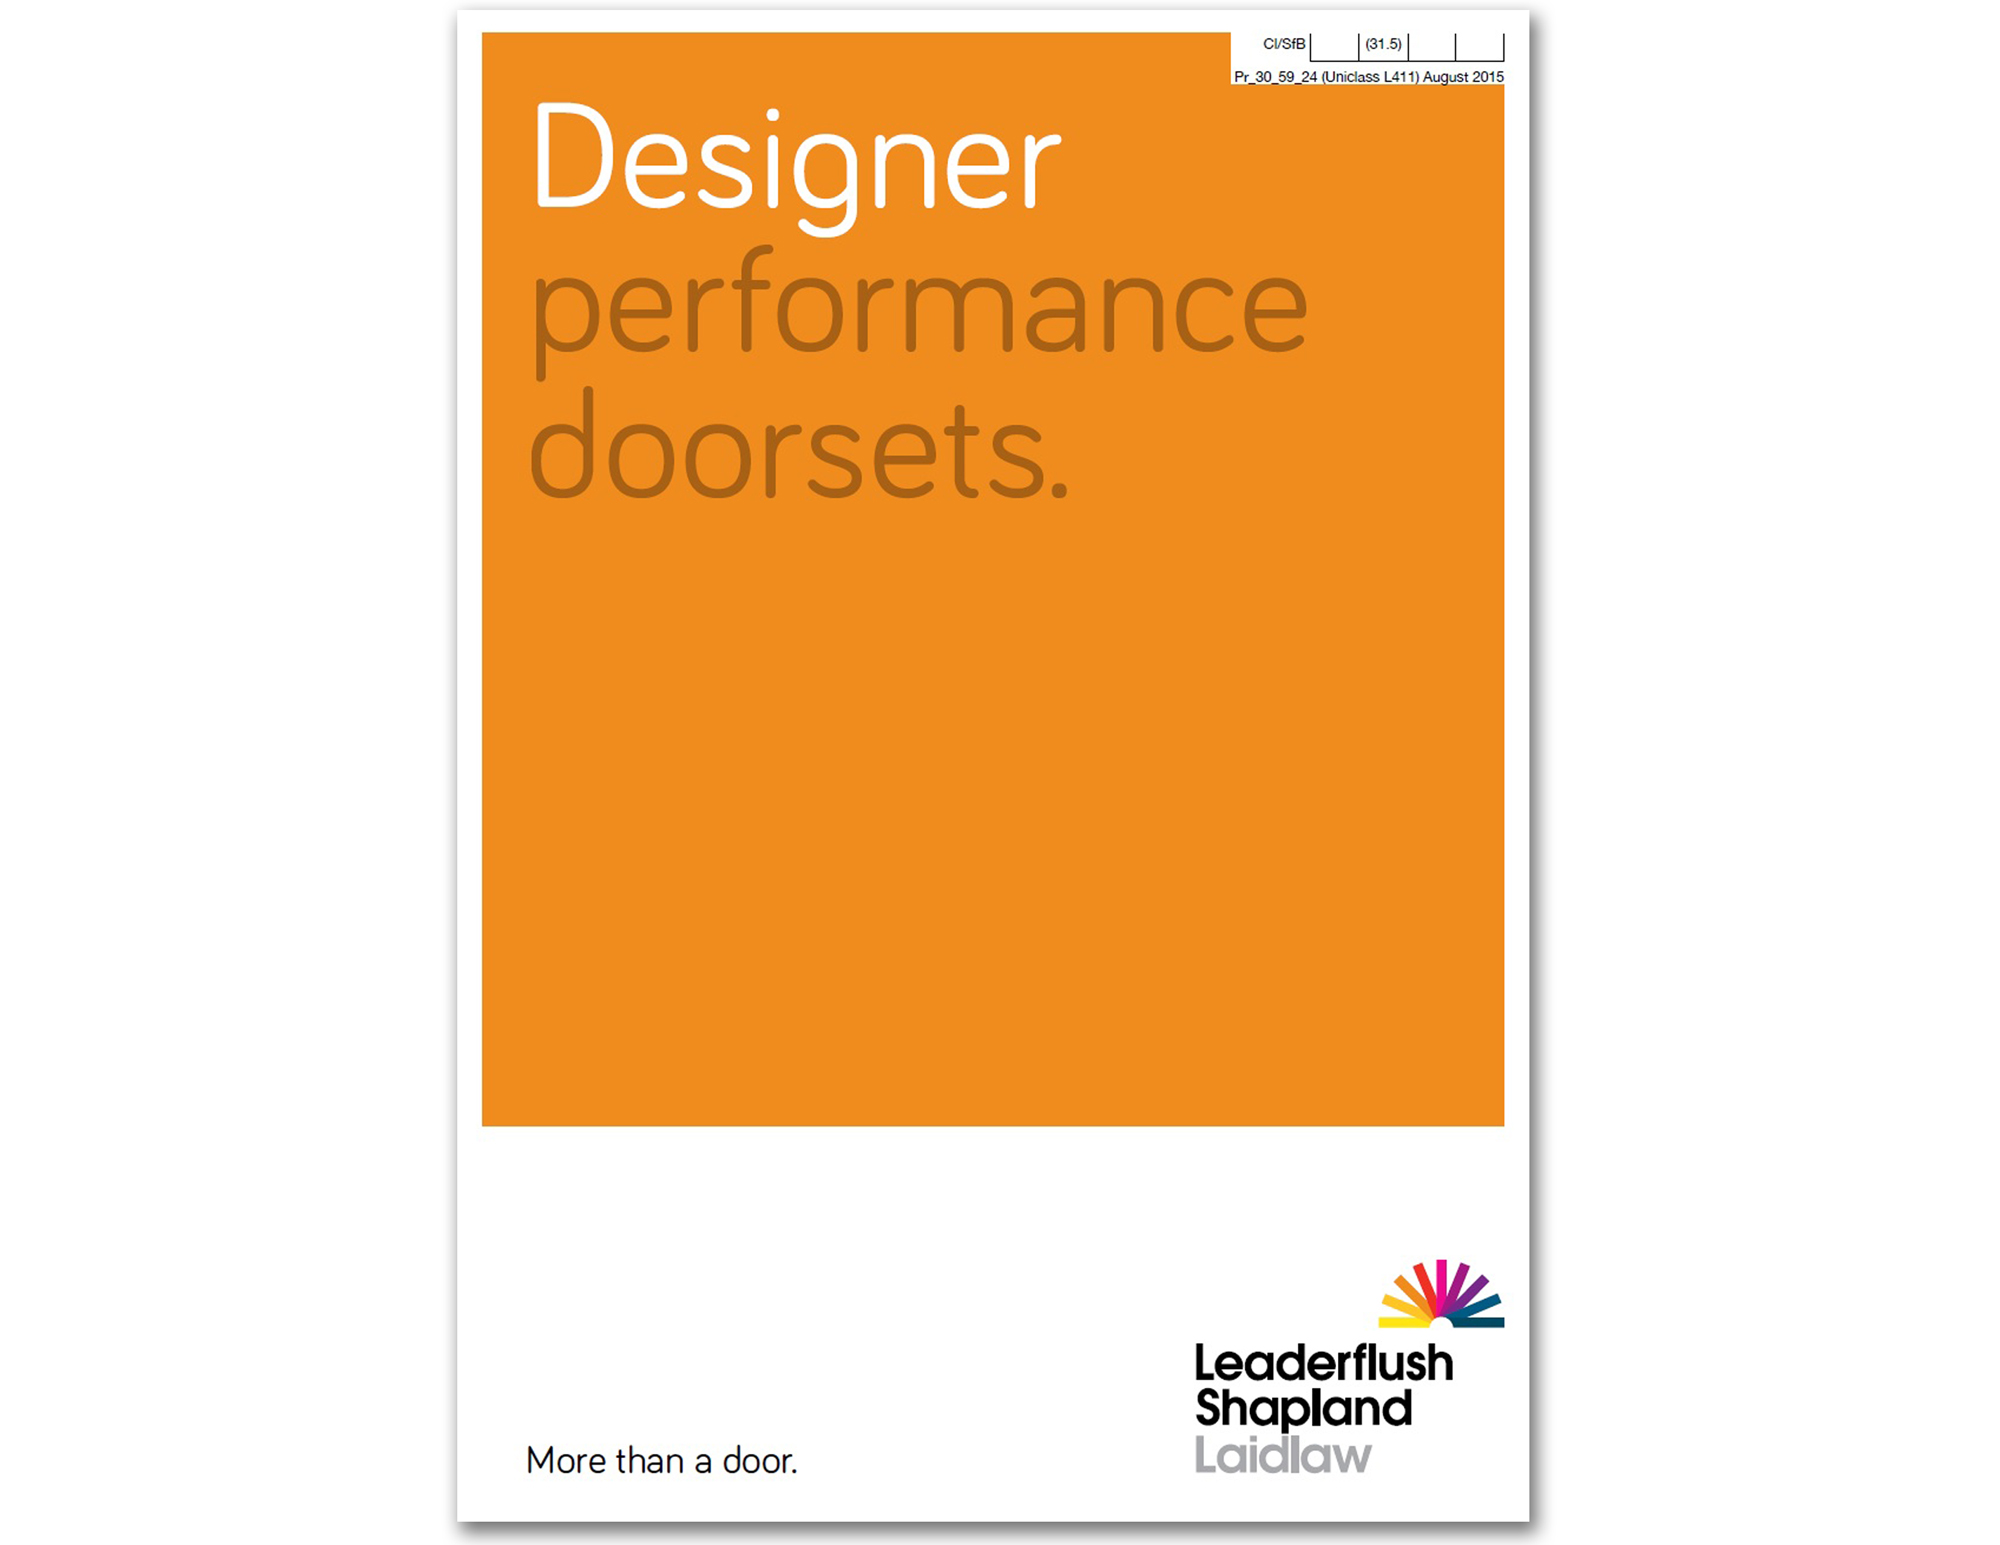 Designer Performance Doorsets